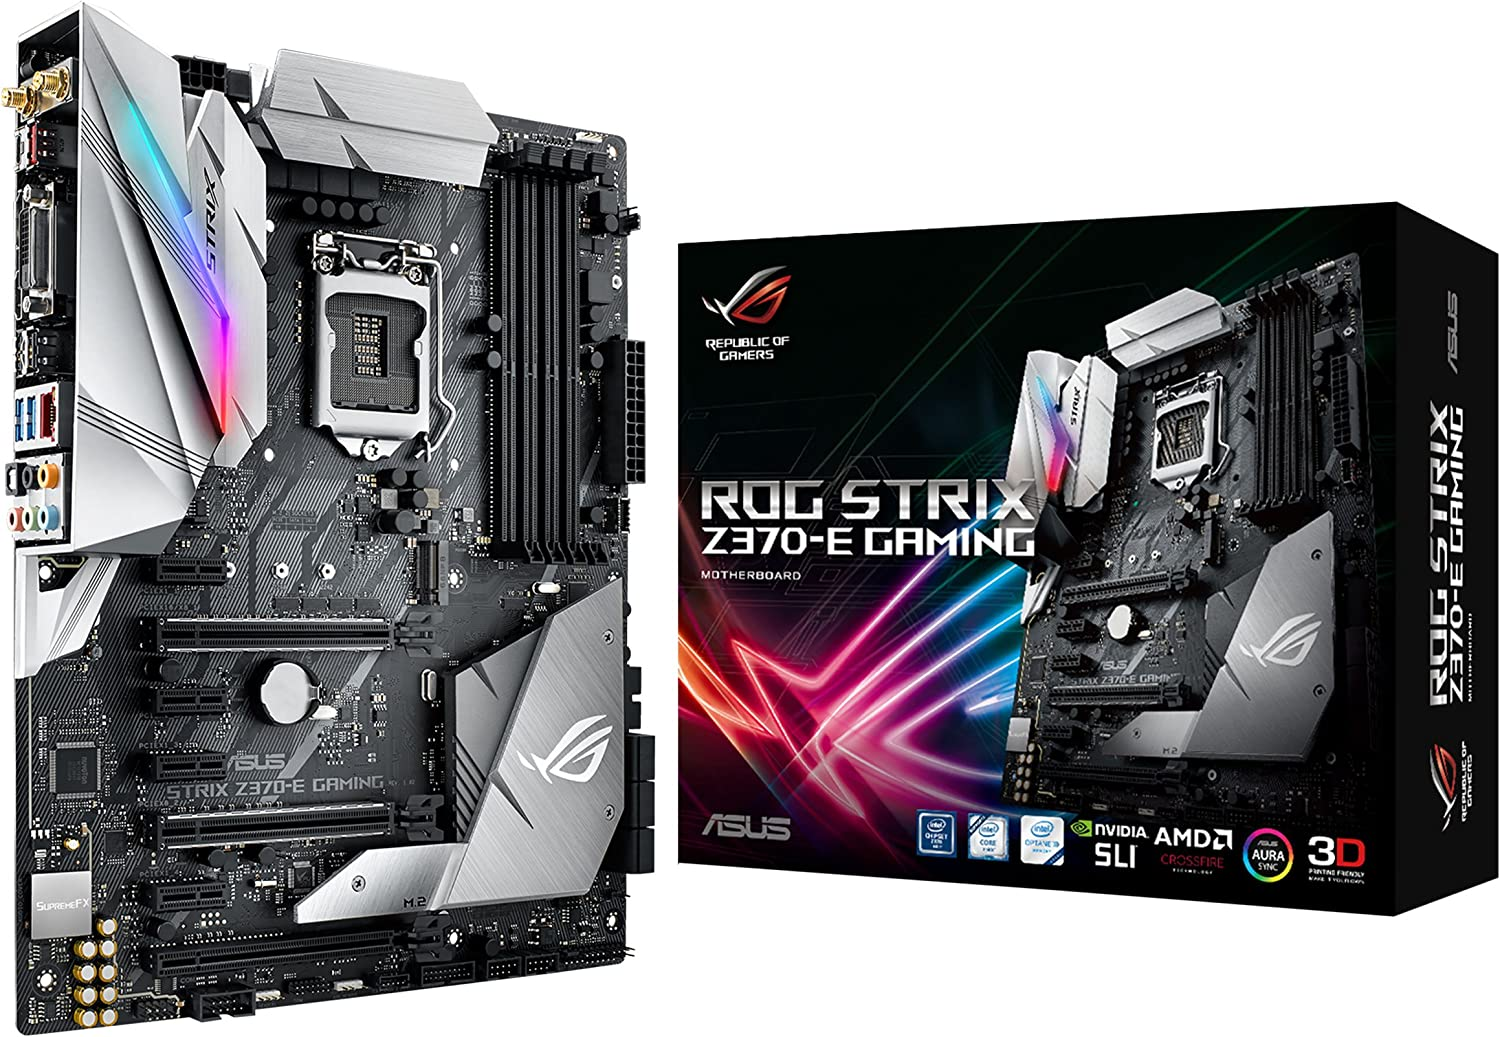 Amazon.com: ASUS ROG Strix Z370-E Gaming LGA1151 DDR4 DP HDMI DVI M.2 Z370 ATX Motherboard with onboard 802.11ac WiFi and USB 3.1 for 8th Generation Intel Core Processors: Computers & Accessories